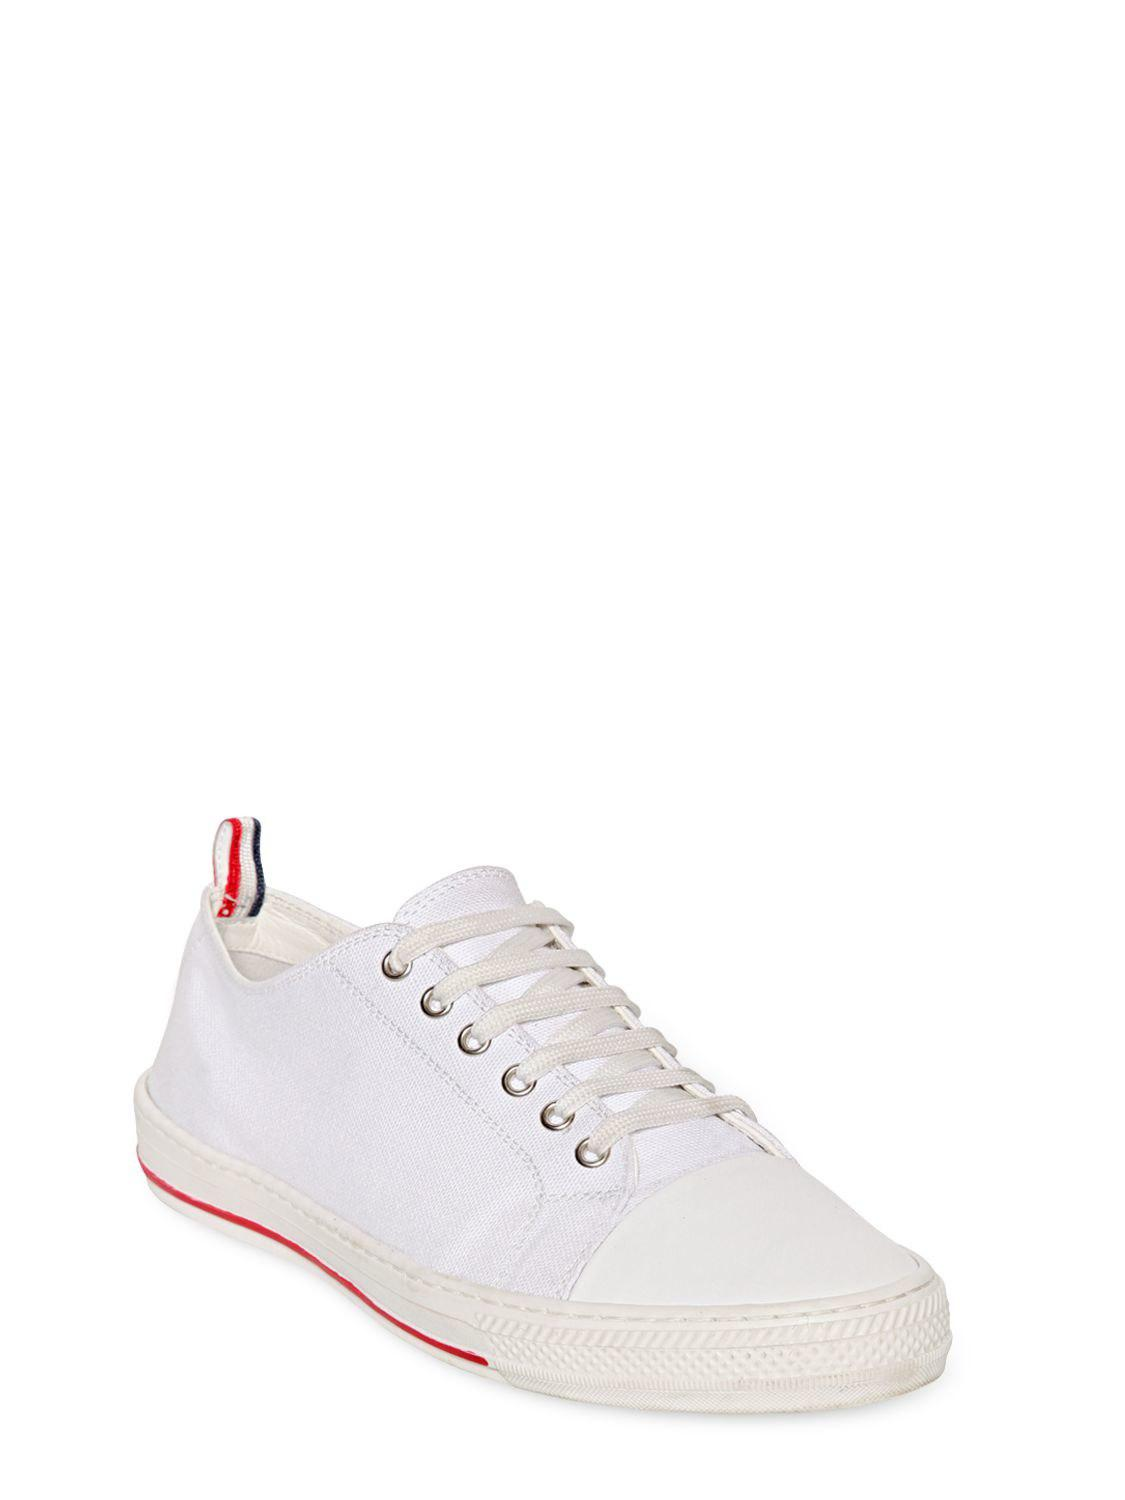 Moncler COTTON CANVAS SNEAKERS IC7yC9ALX7